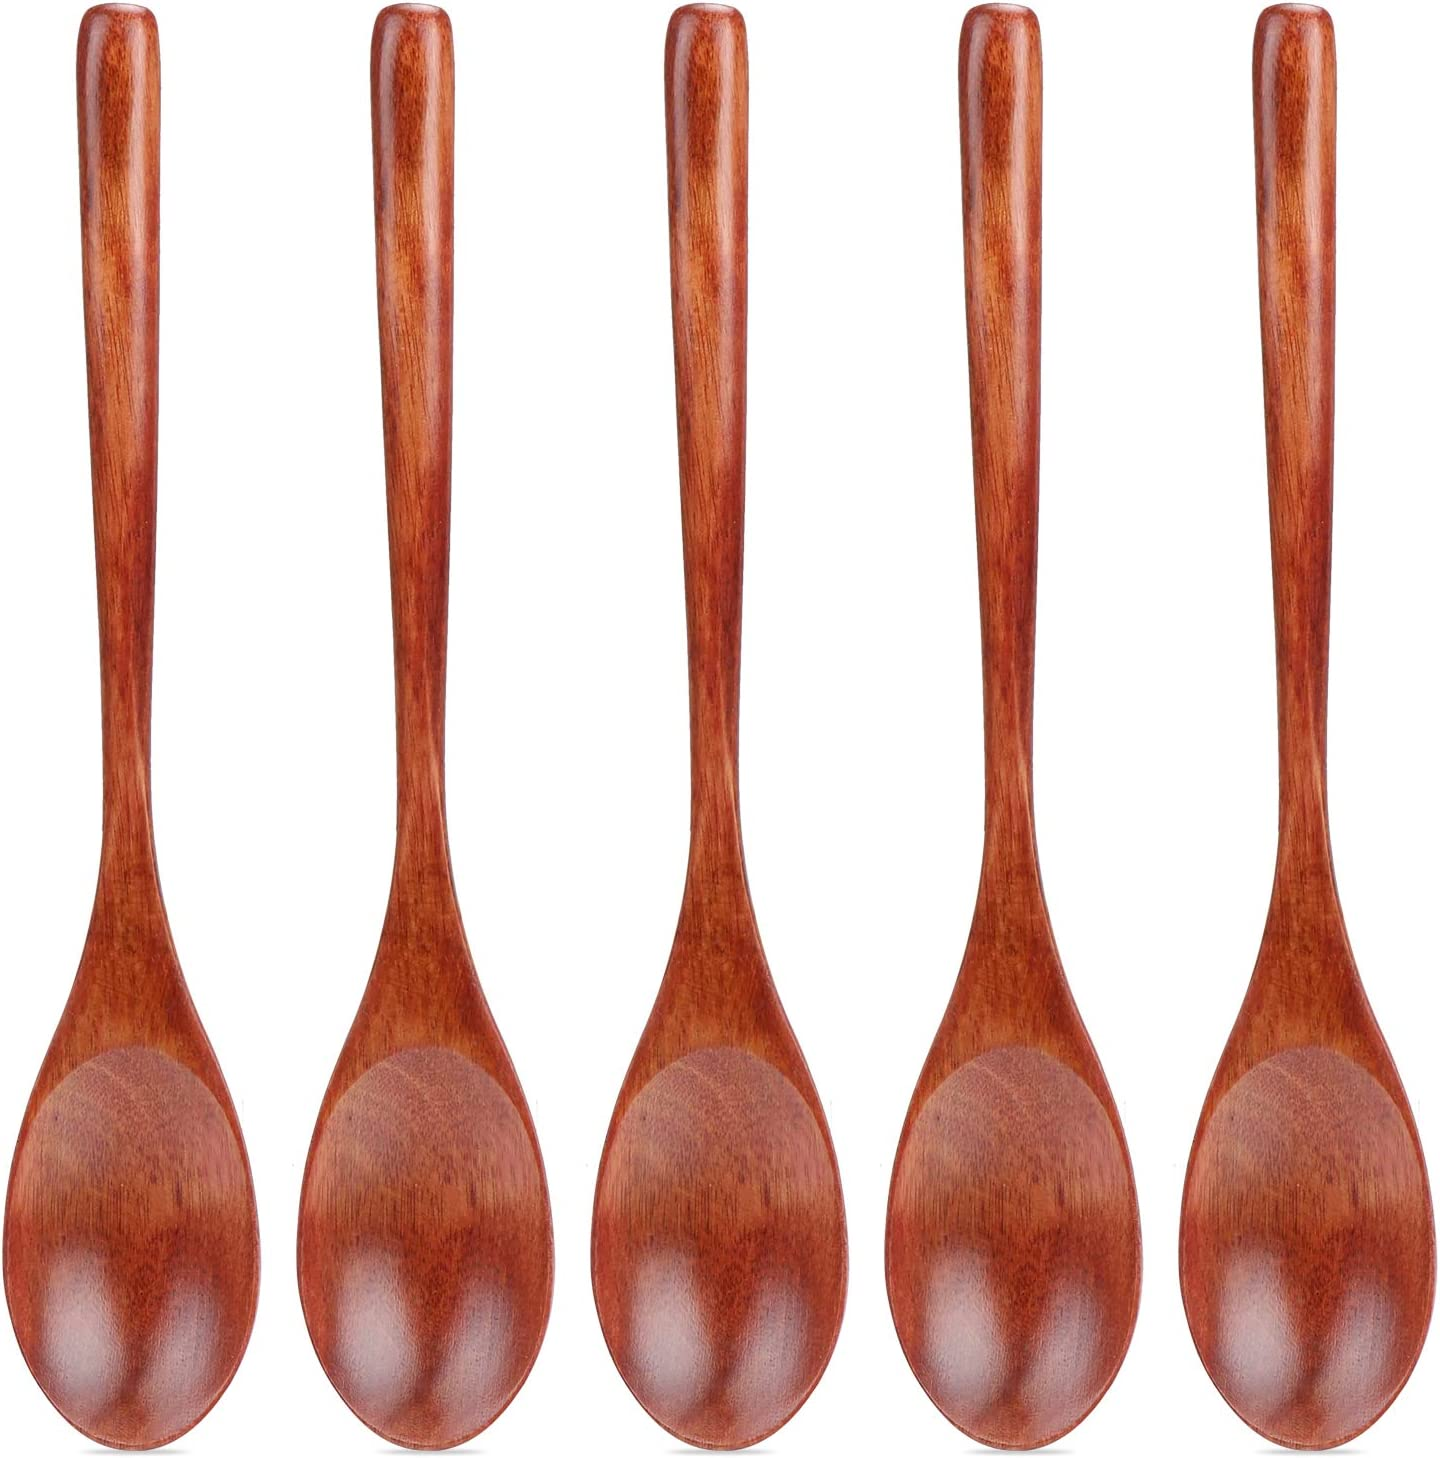 Wooden Soup Spoon Japanese Style Wood spoon Rice Spoon Cooking Utensil Tools